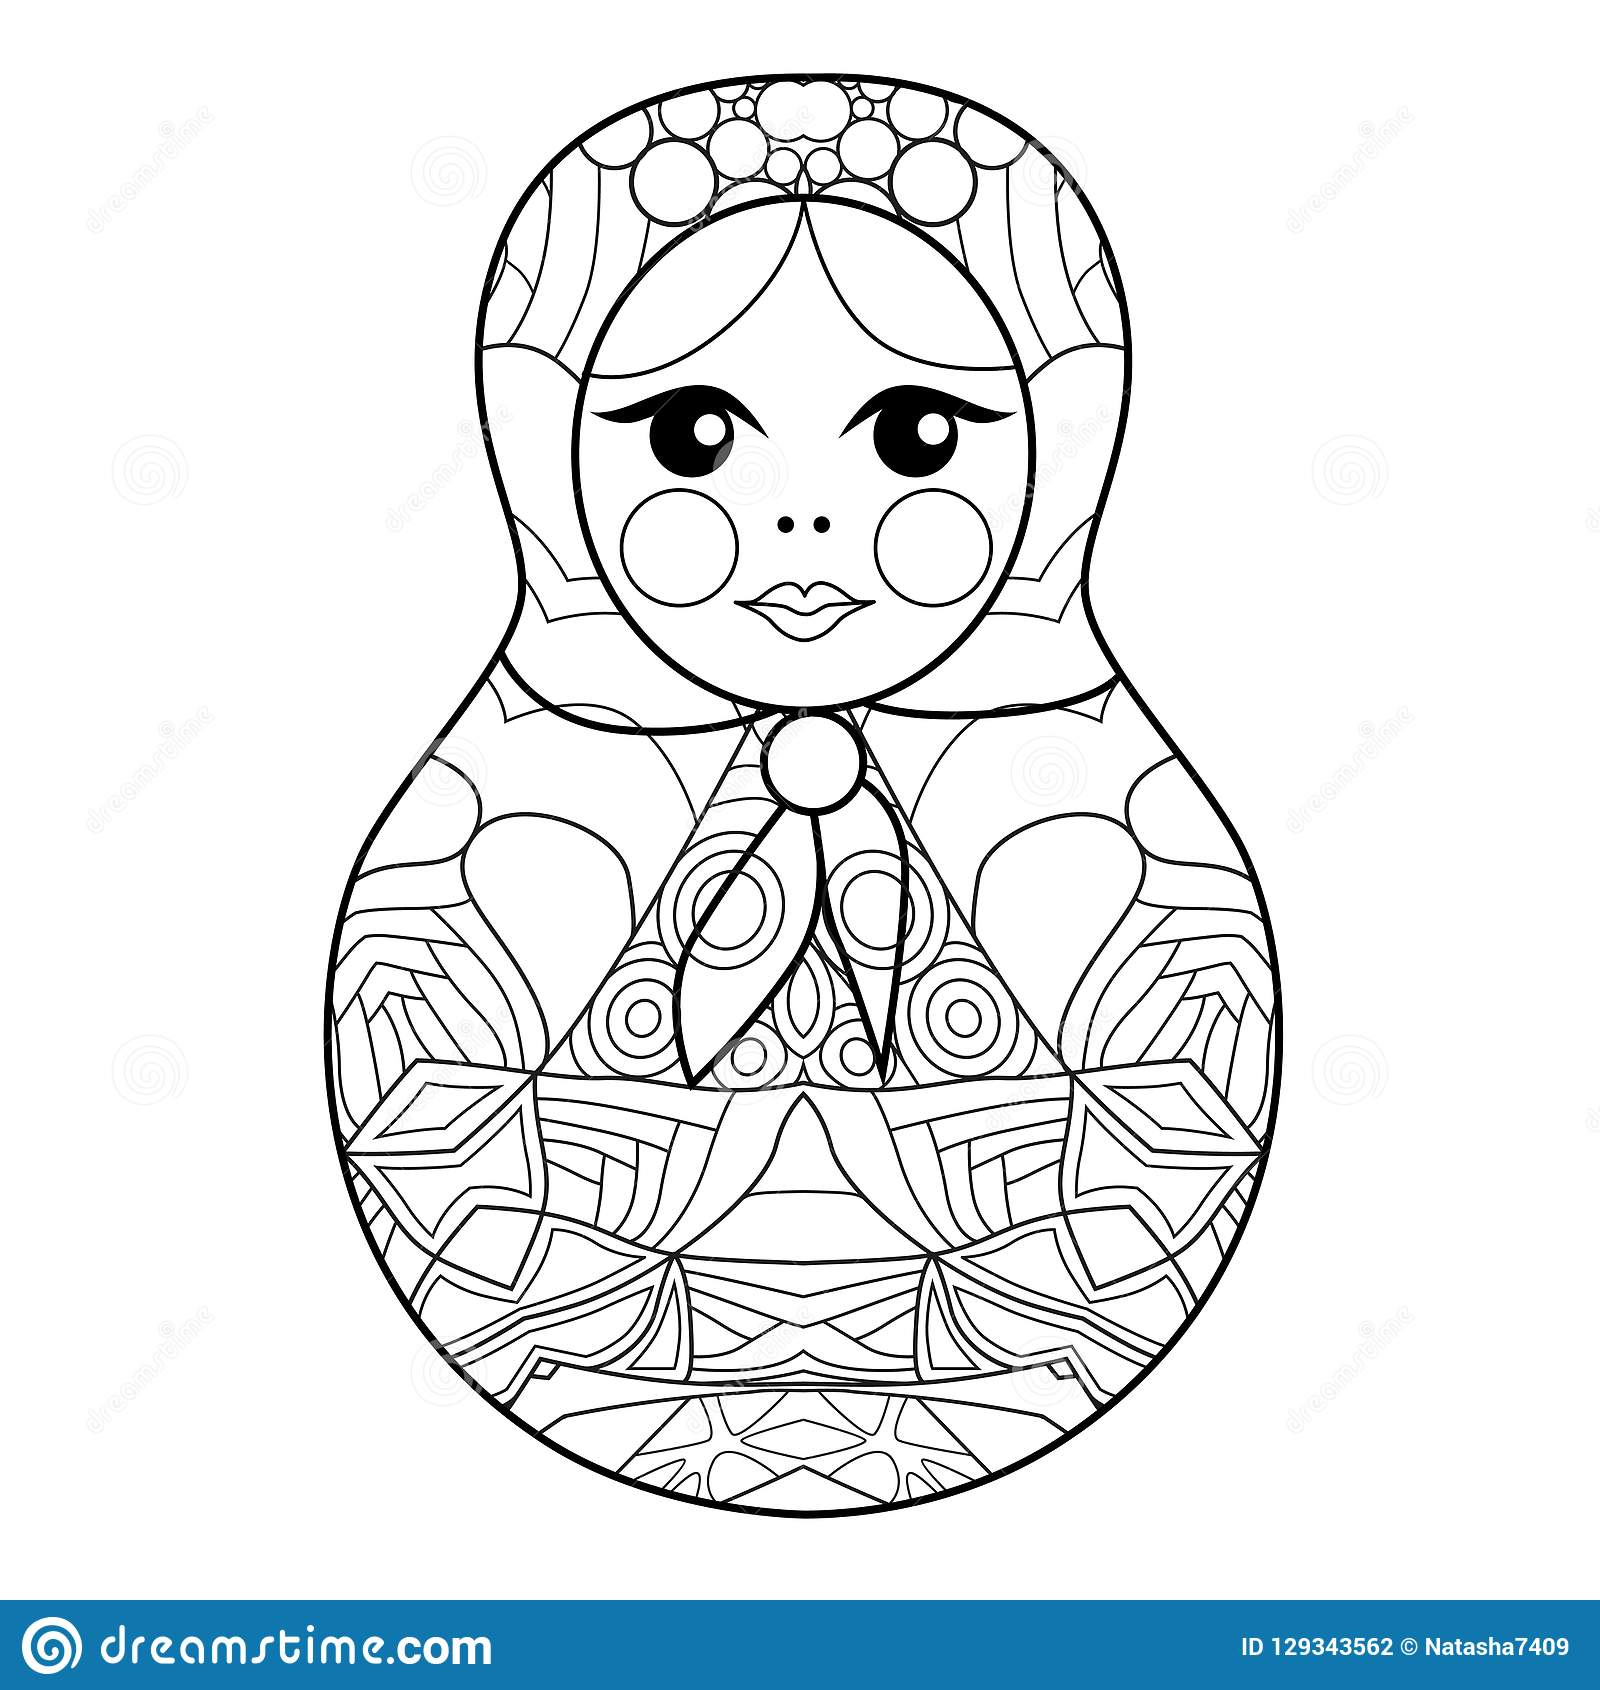 Best Russian Dolls Adult Coloring Pages Printable | 1690x1600